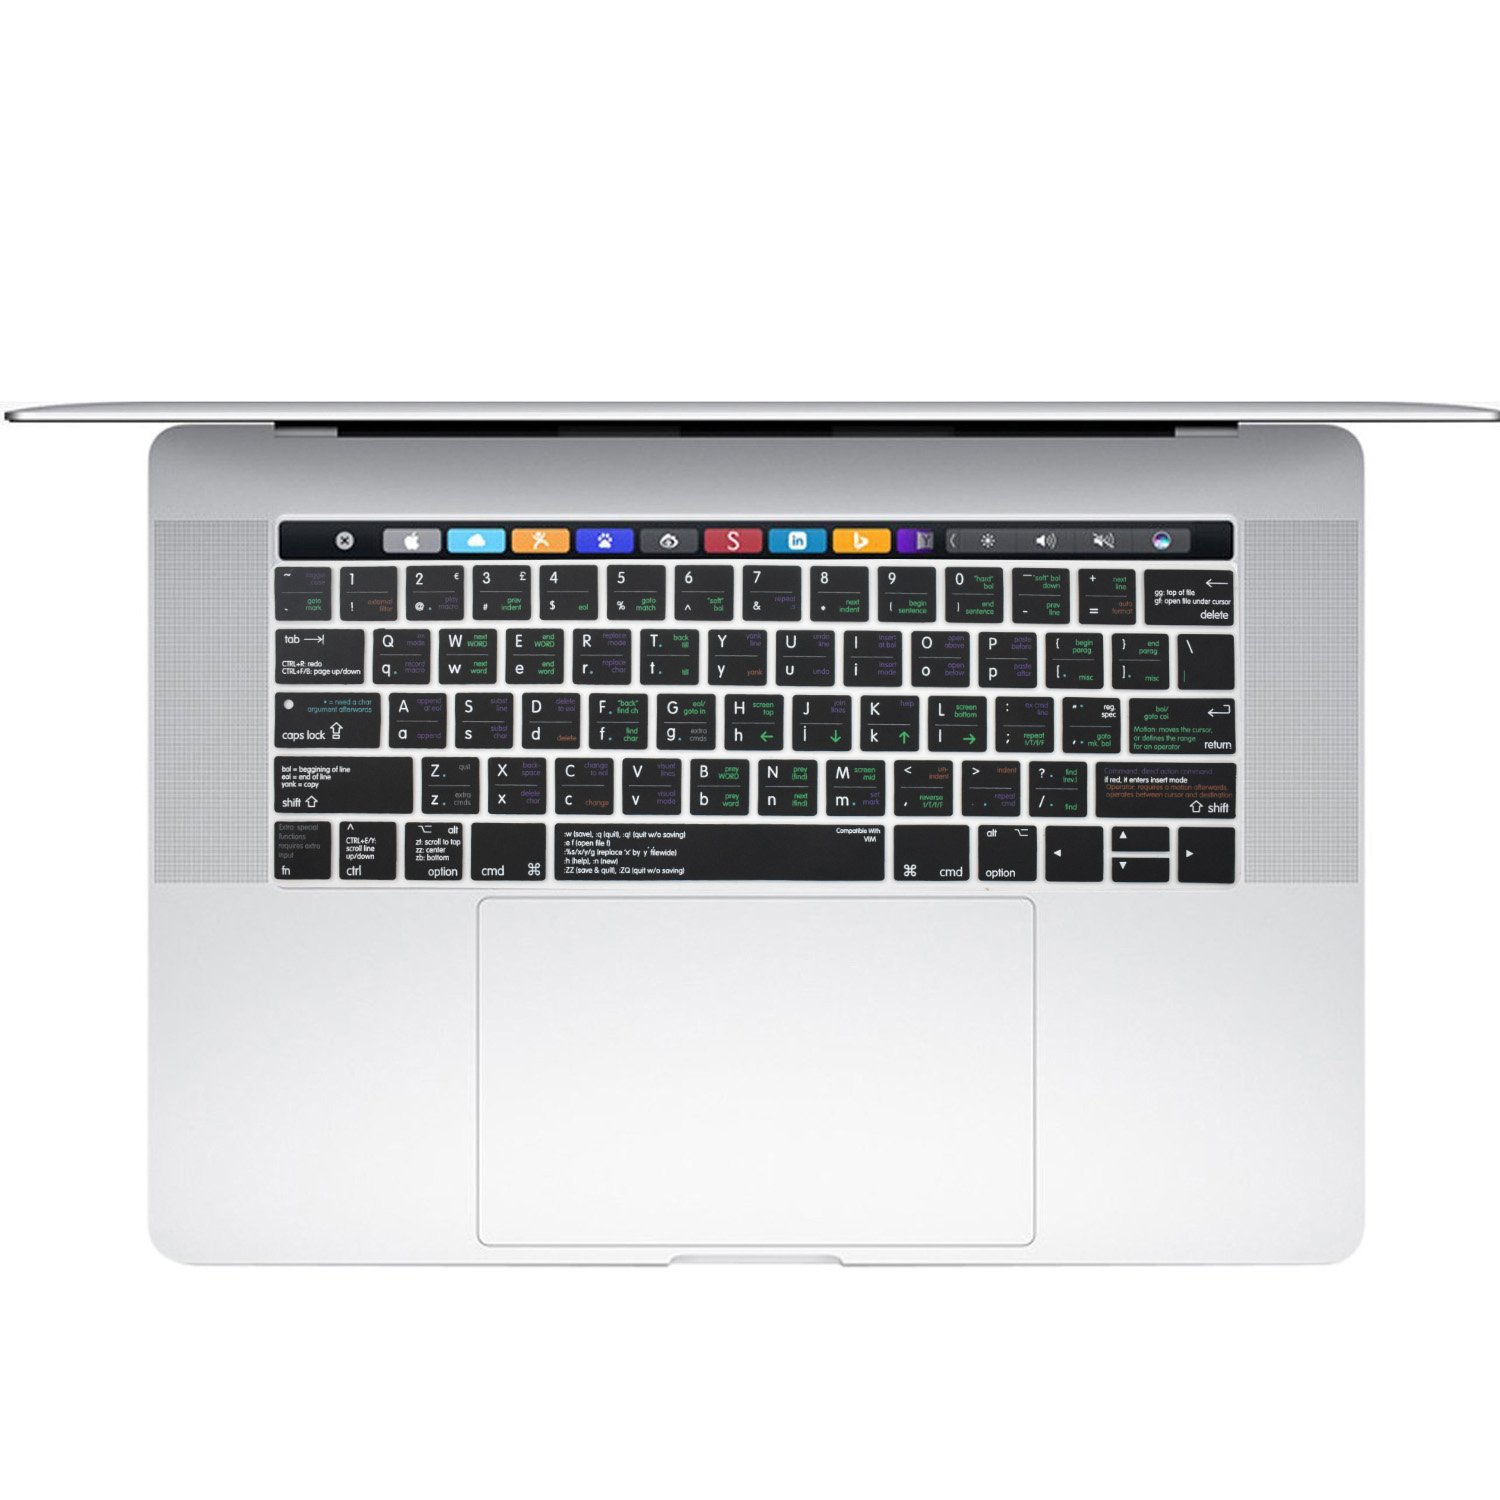 Amazoncom Dogxiong Touch Bar Us Layout Linux Vi Vim Functional Hot .